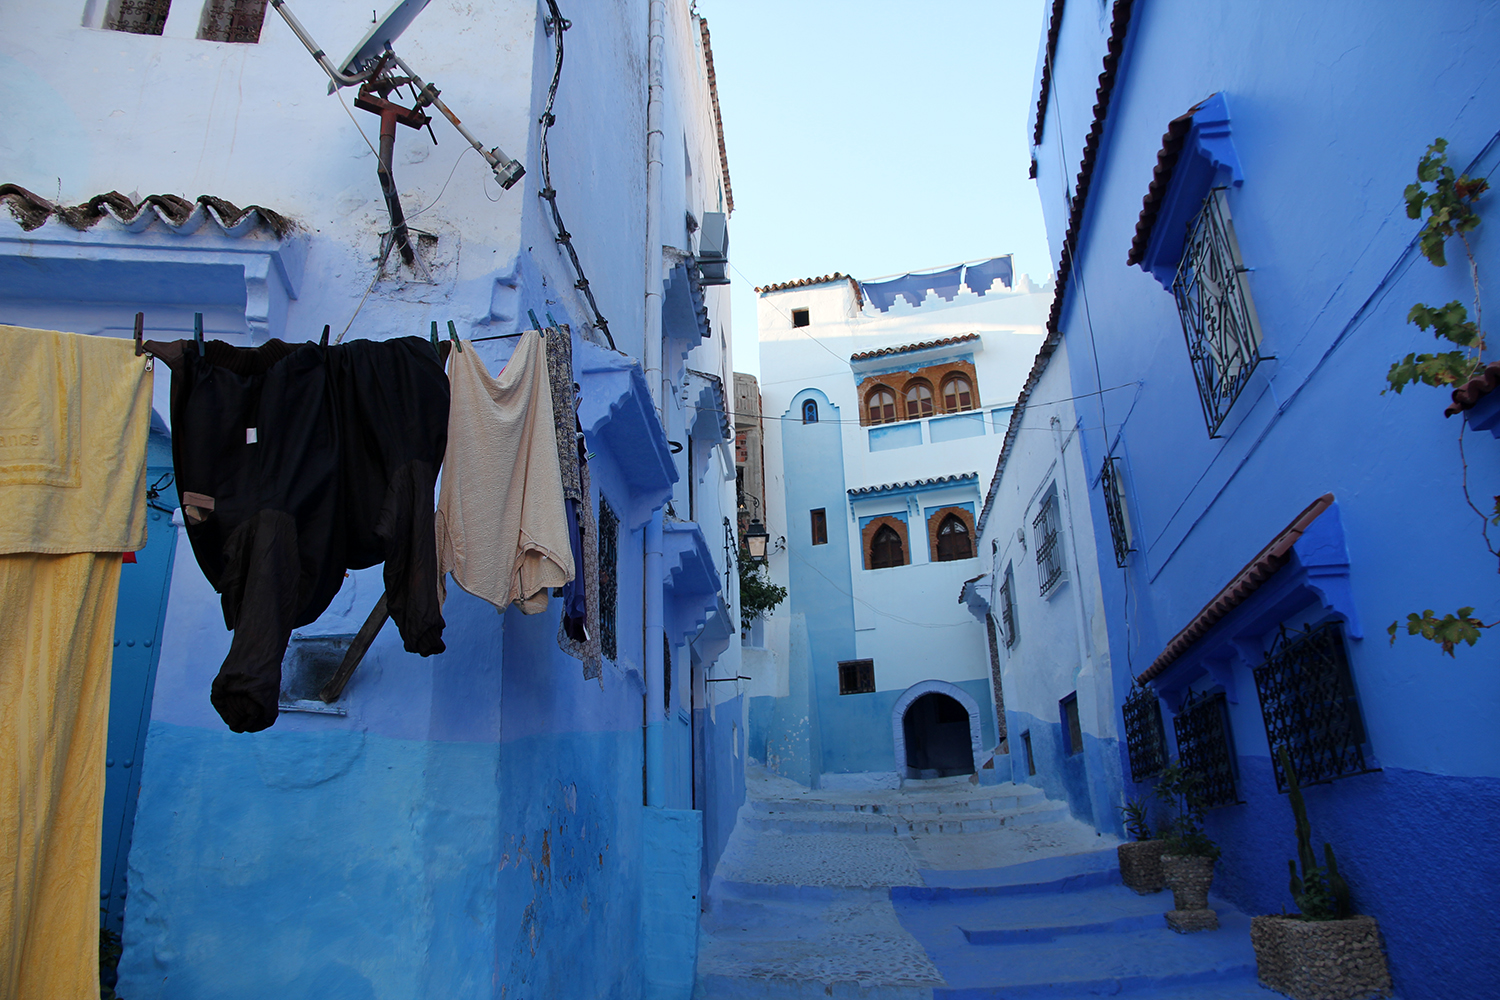 Morocco Travel Guide Map Highlights Travel Tips - Old town morocco entirely blue